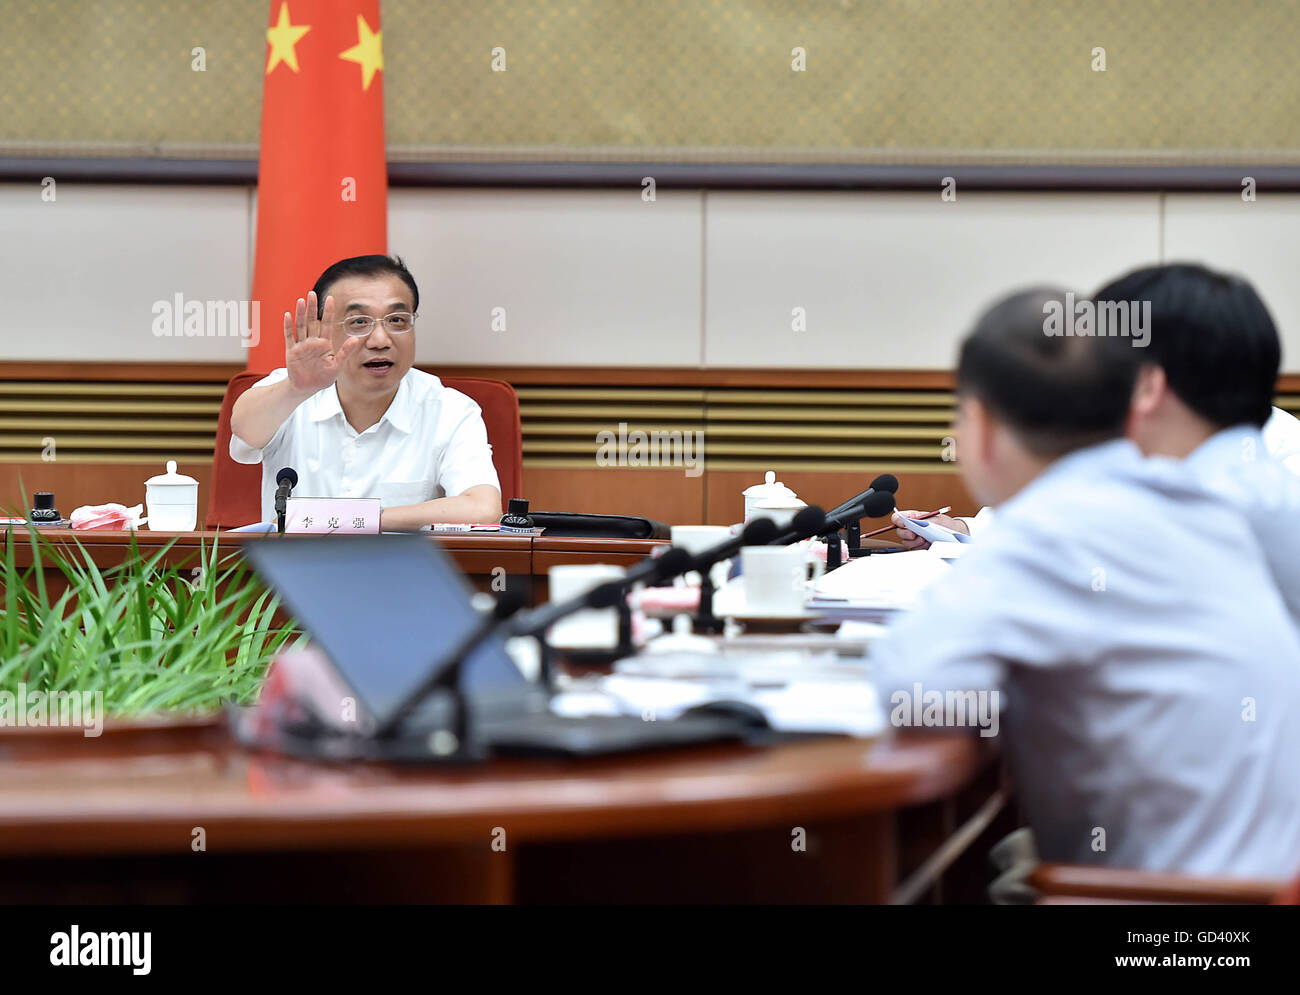 Beijing, China. 12th July, 2016. Chinese Premier Li Keqiang (L) presides over a symposium studying the current economic - Stock Image